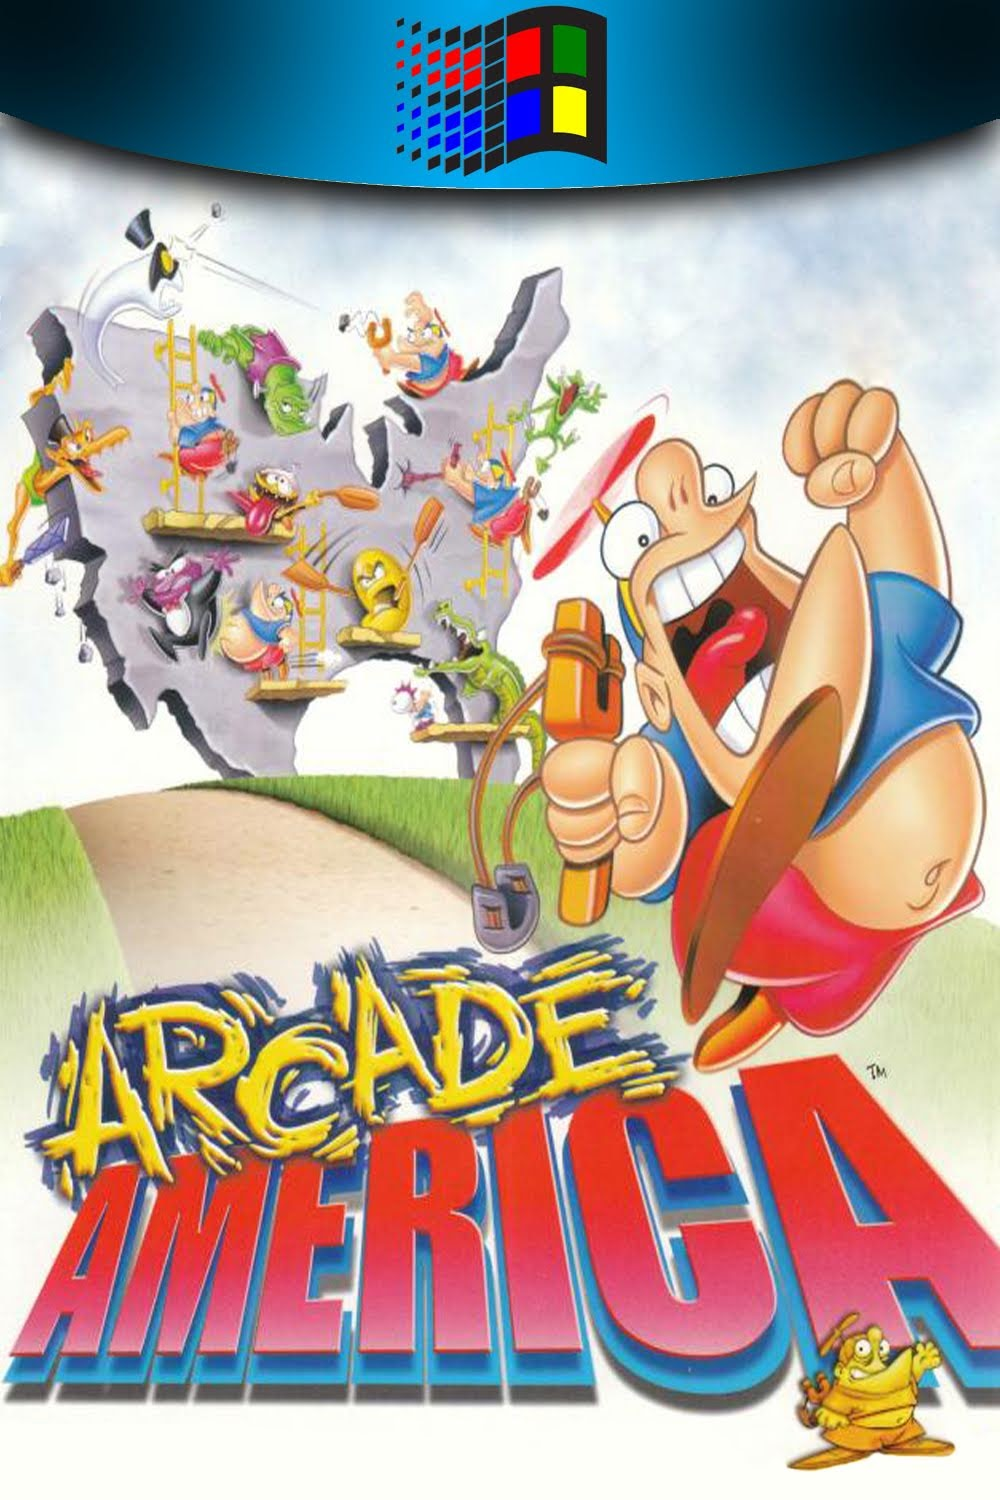 https://collectionchamber.blogspot.com/p/arcade-america.html